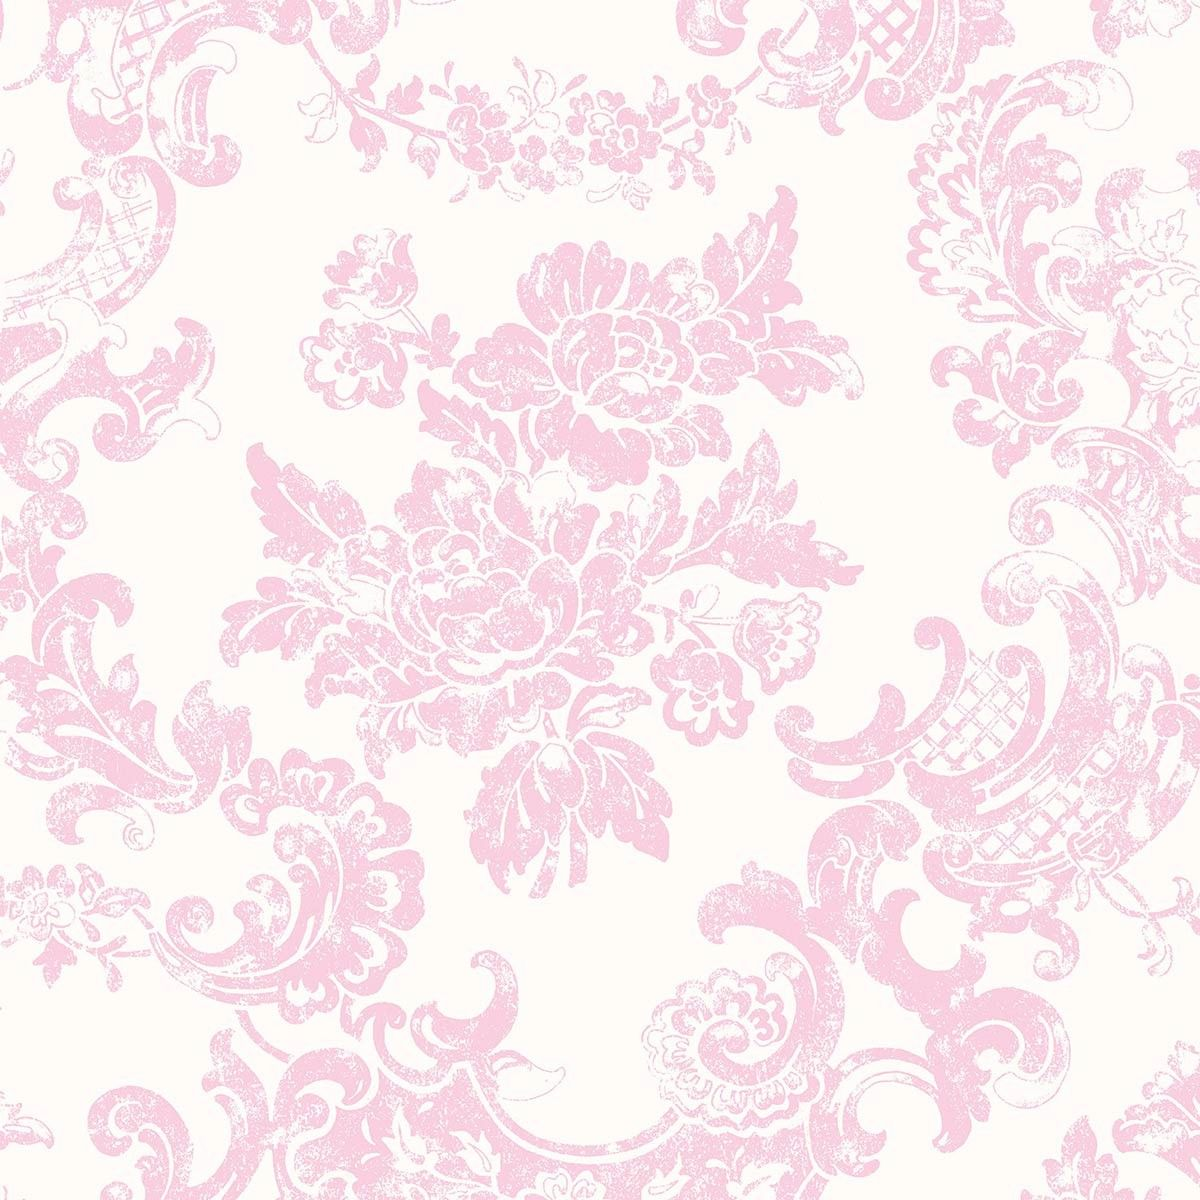 1200x1200 Crown Vintage Lace Marshmallow Wallpaper | Inspired Wallpaper